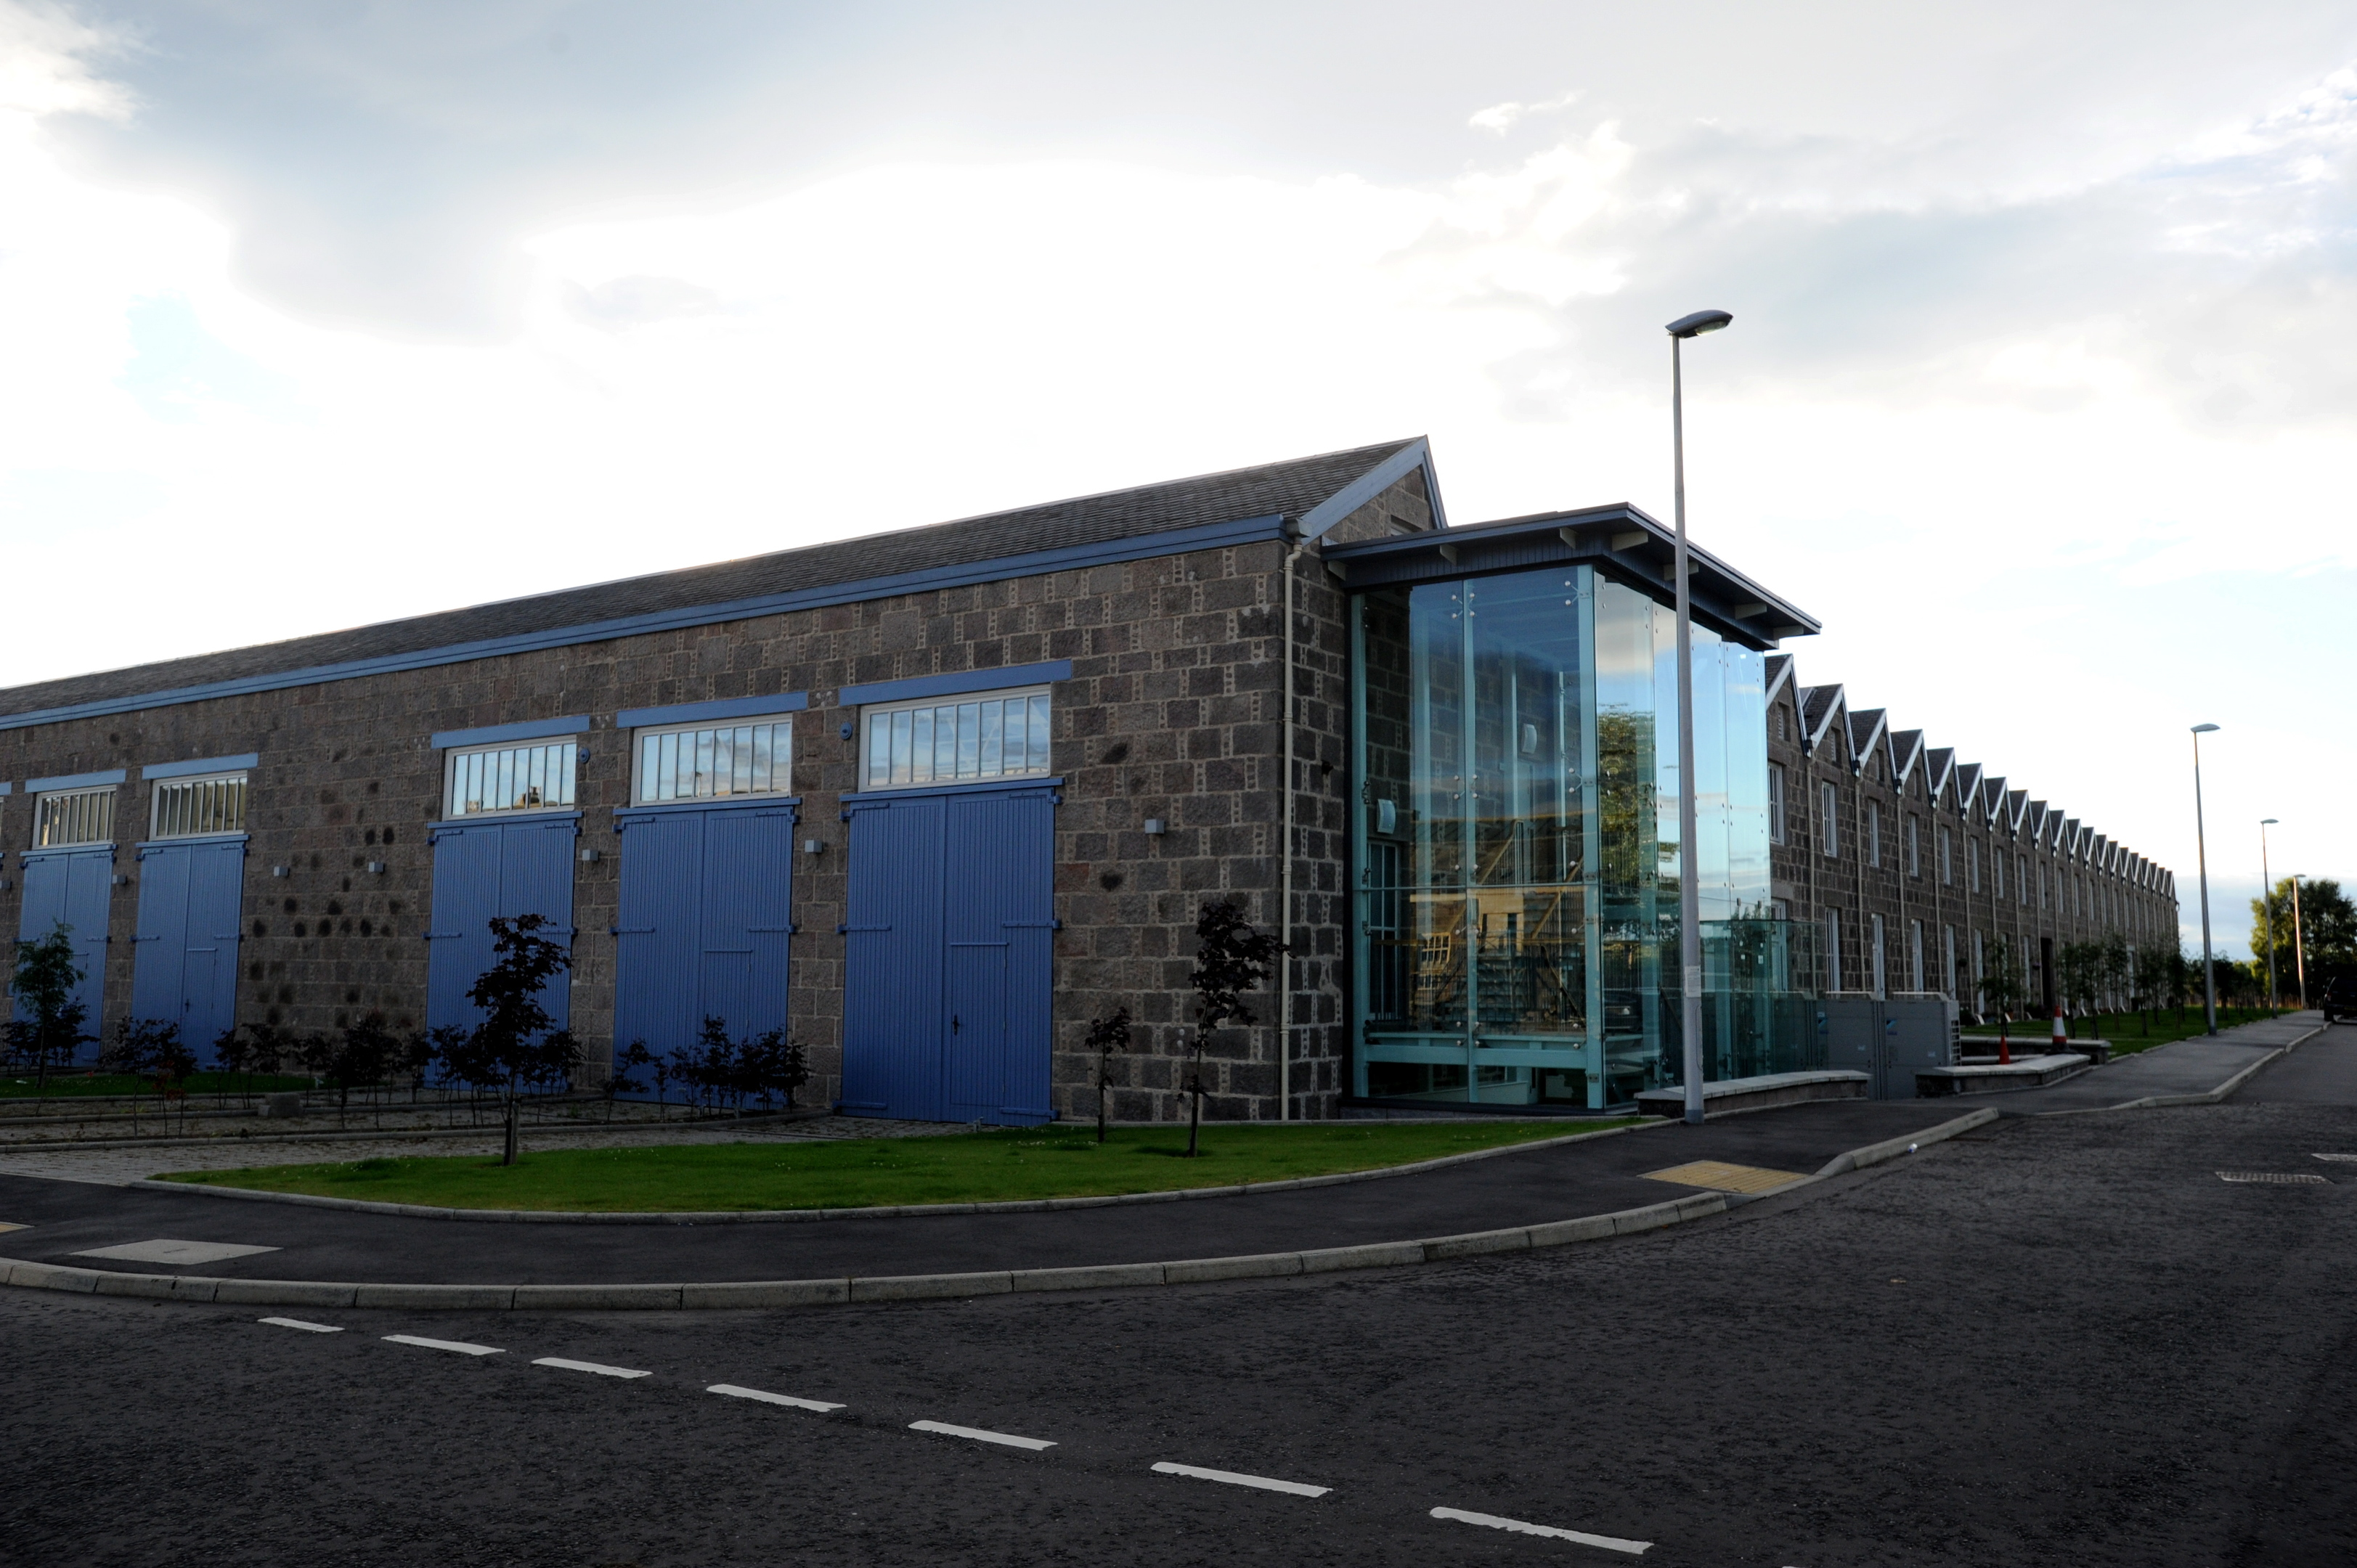 Garioch Heritage Society is moving into the former loco works.